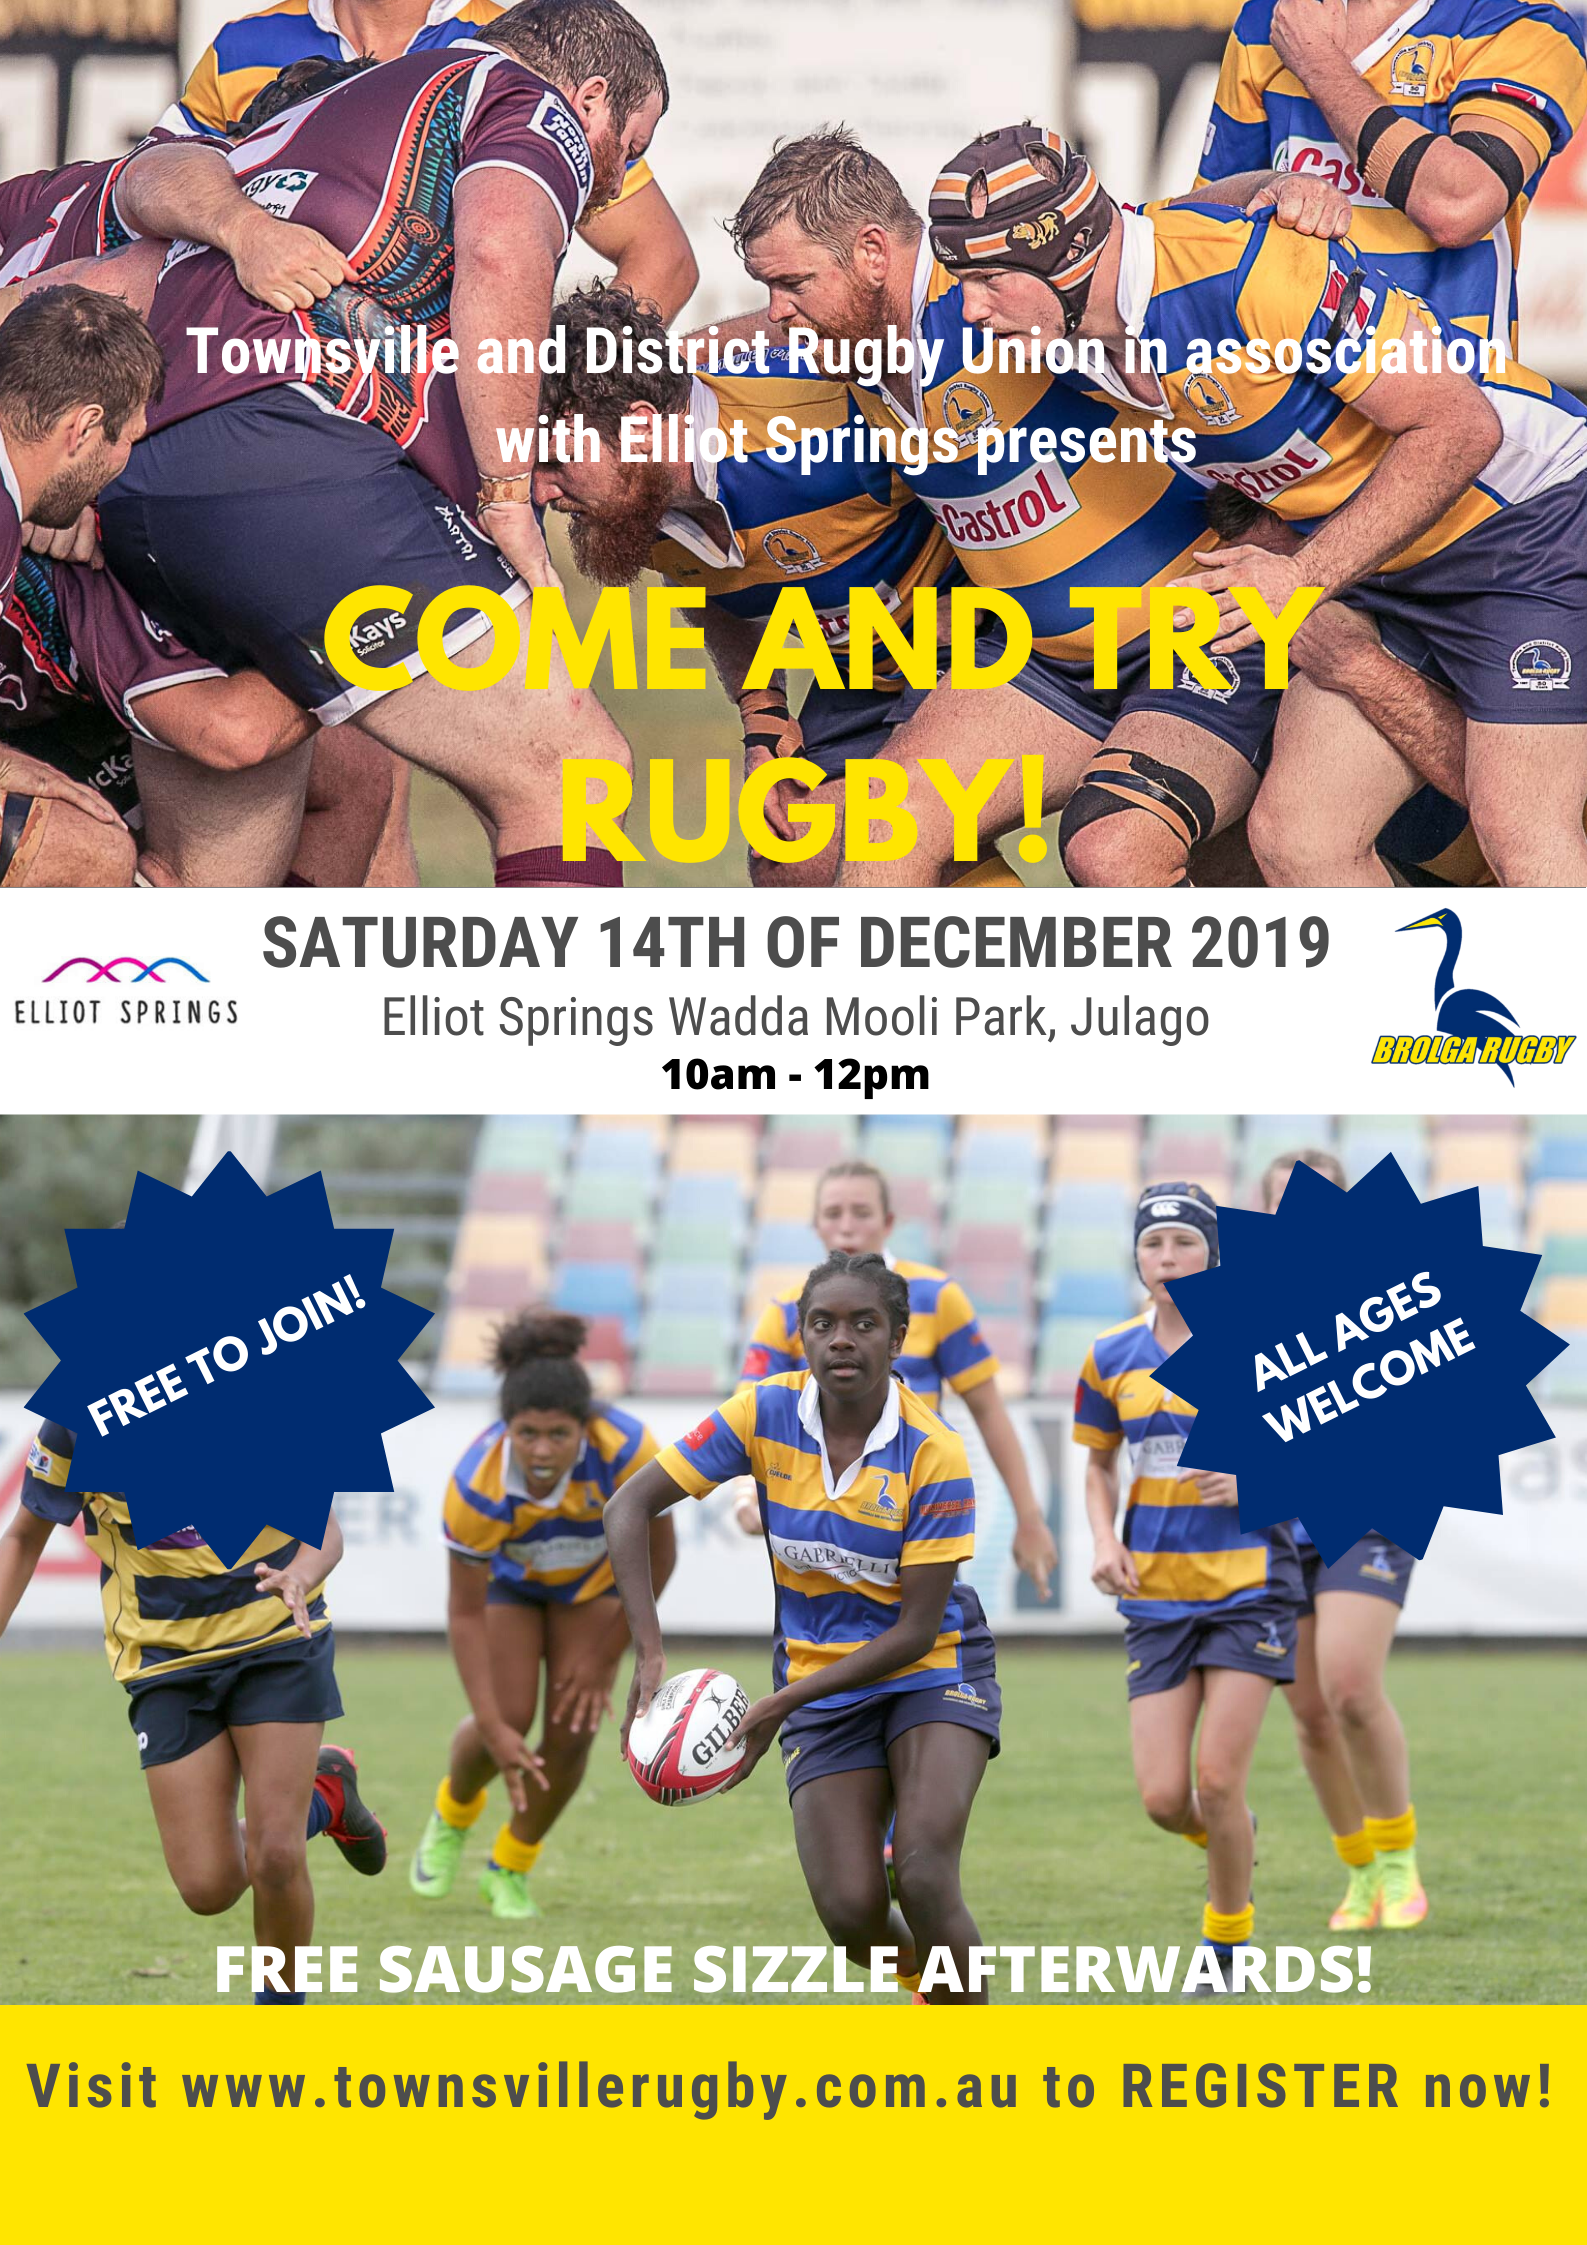 Elliot Springs Come Try Rugby Townsville Districts Rugby Union